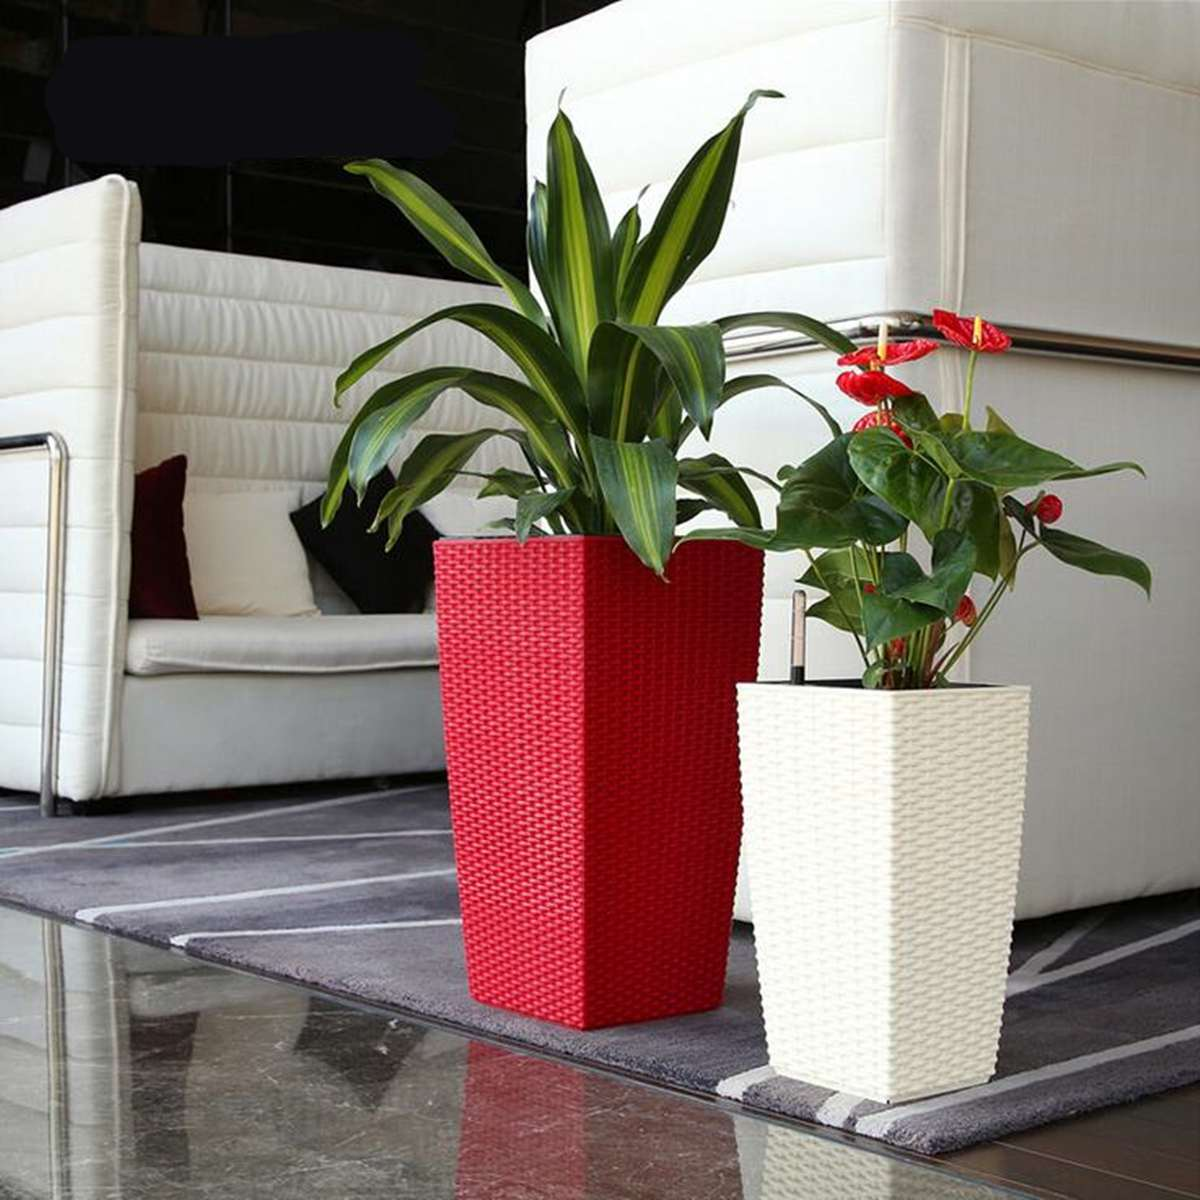 Outdoor/Indoor Creatives Self Watering Planter Home Gardening Plastic Woven Garden Flower Pot With Water Level Indicator